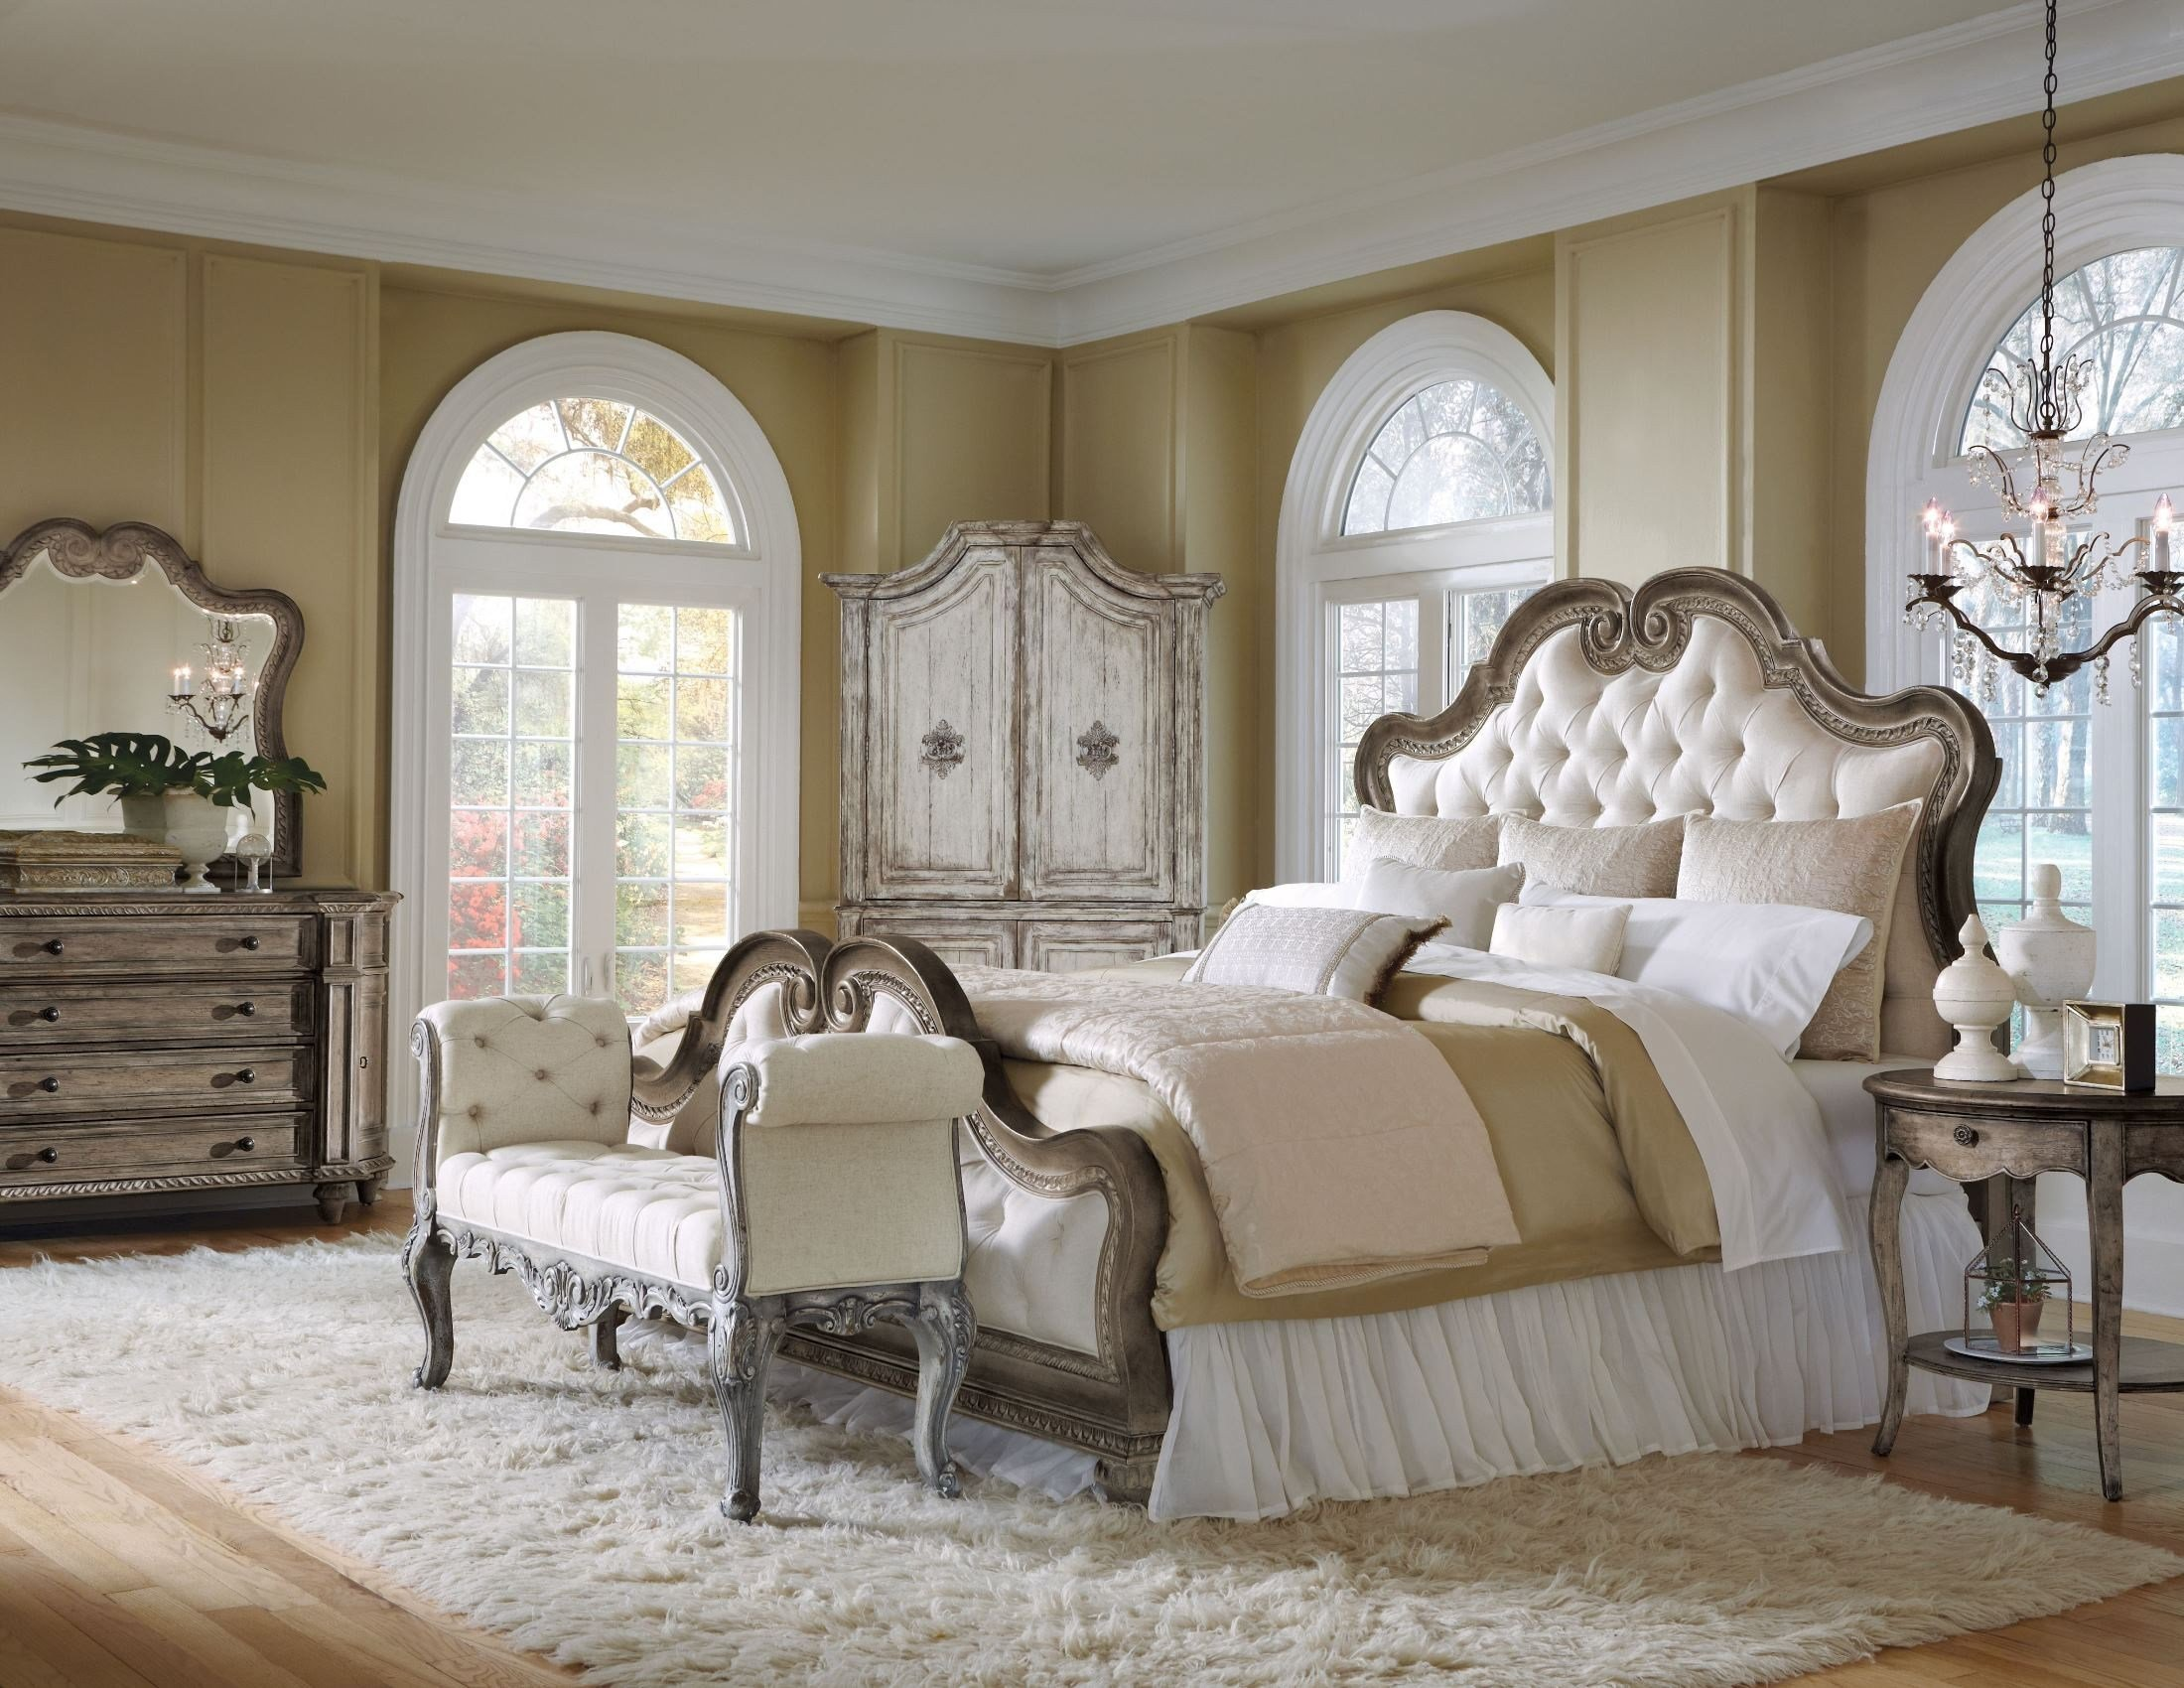 Best Arabella Upholstered Bedroom Set From Pulaski 211170 With Pictures